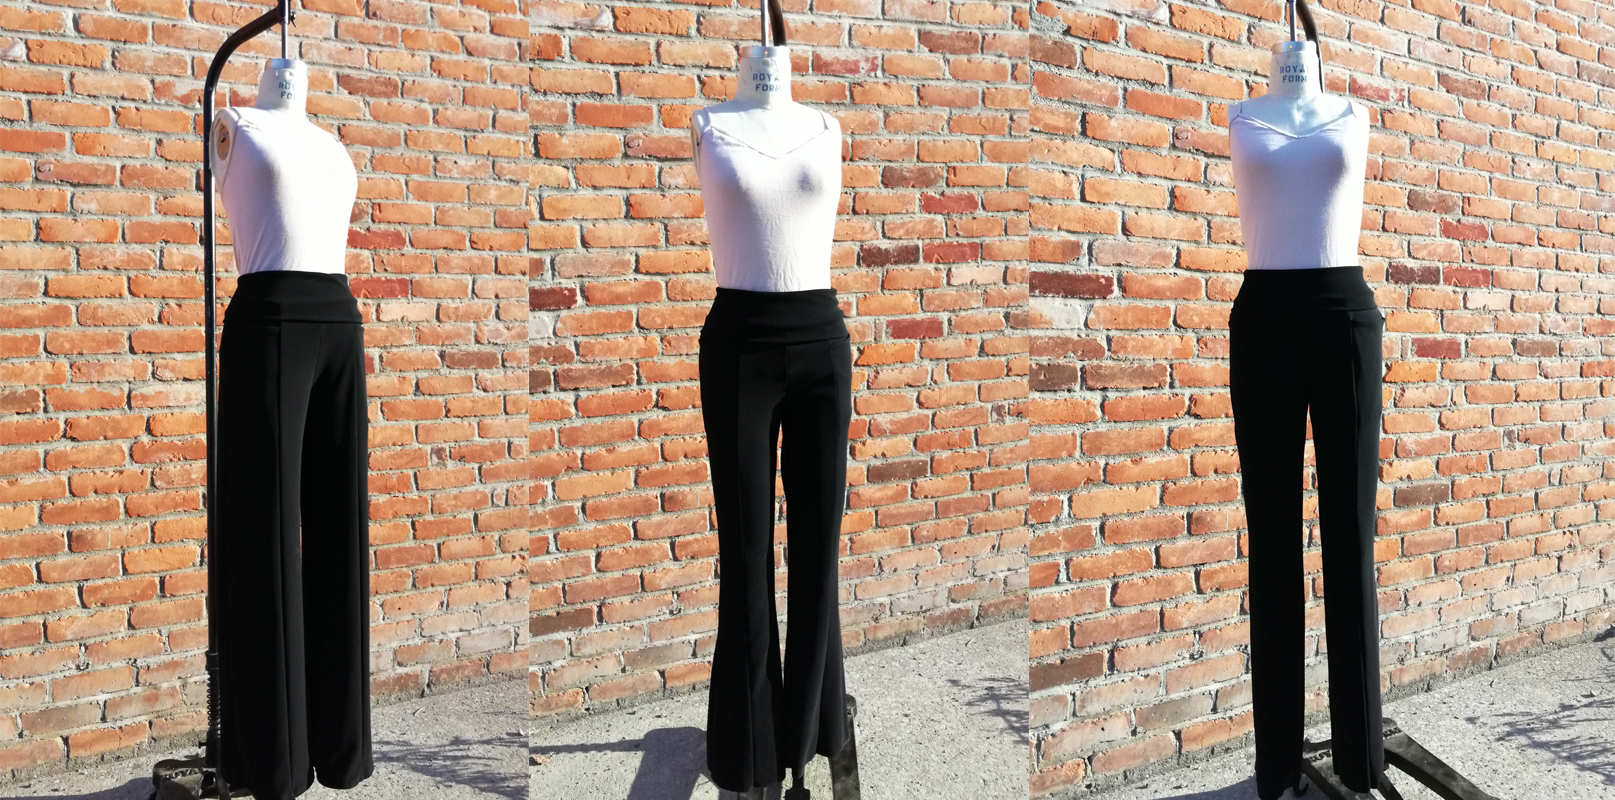 Classic Wide Leg, Flare Leg and Skinny Leg Perfect Pants in the perfect black 4-way stretch heavyweight ponte knit. Your new favorite pants!